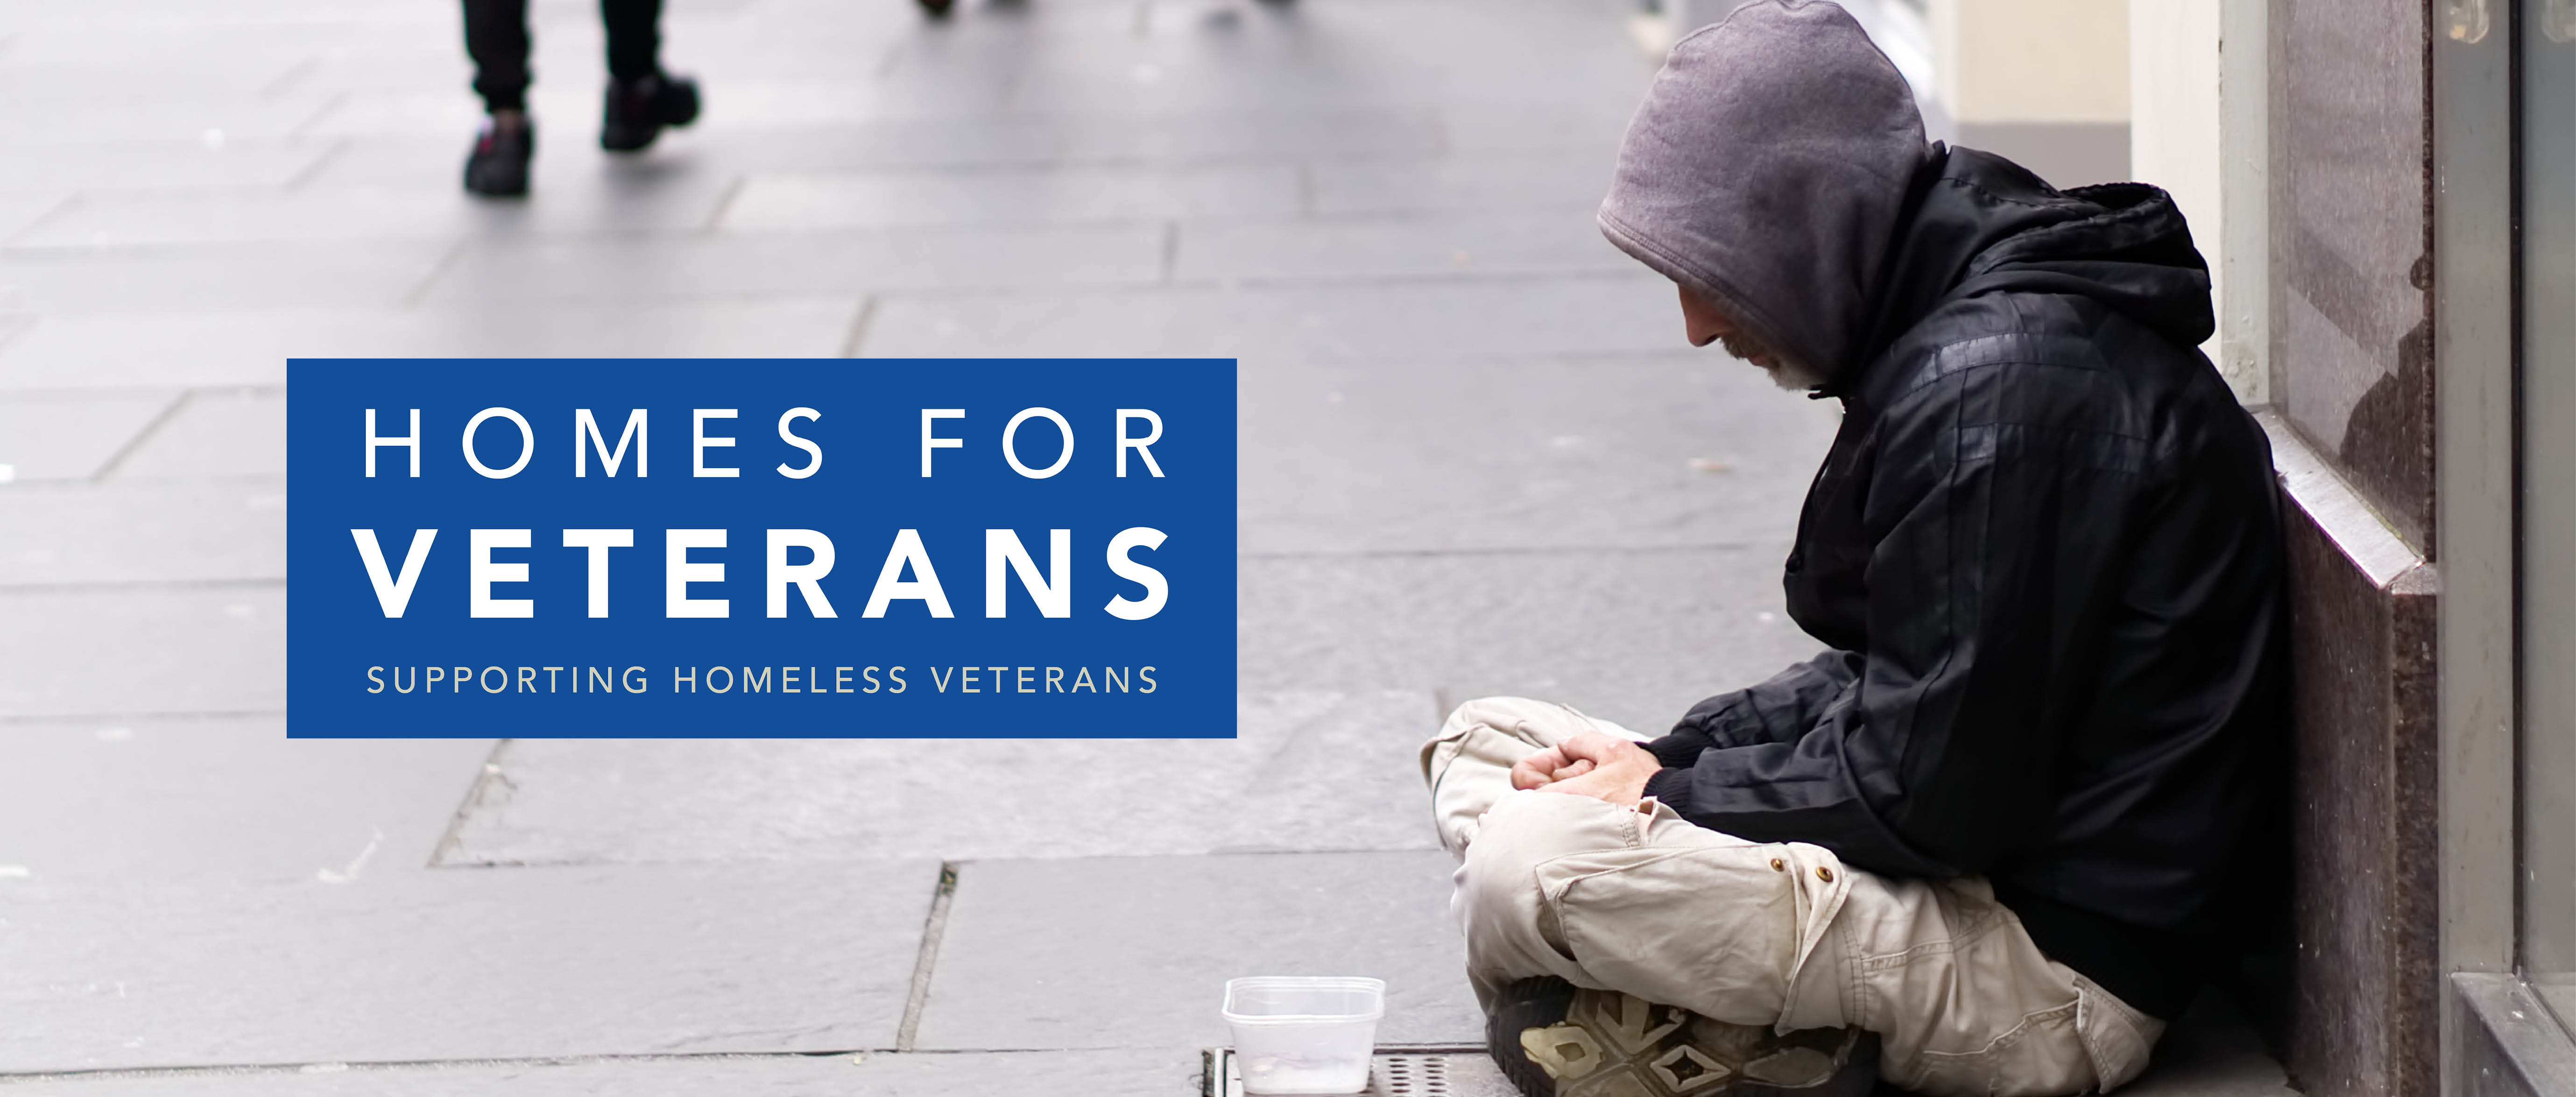 Homeless Veterans Appeal